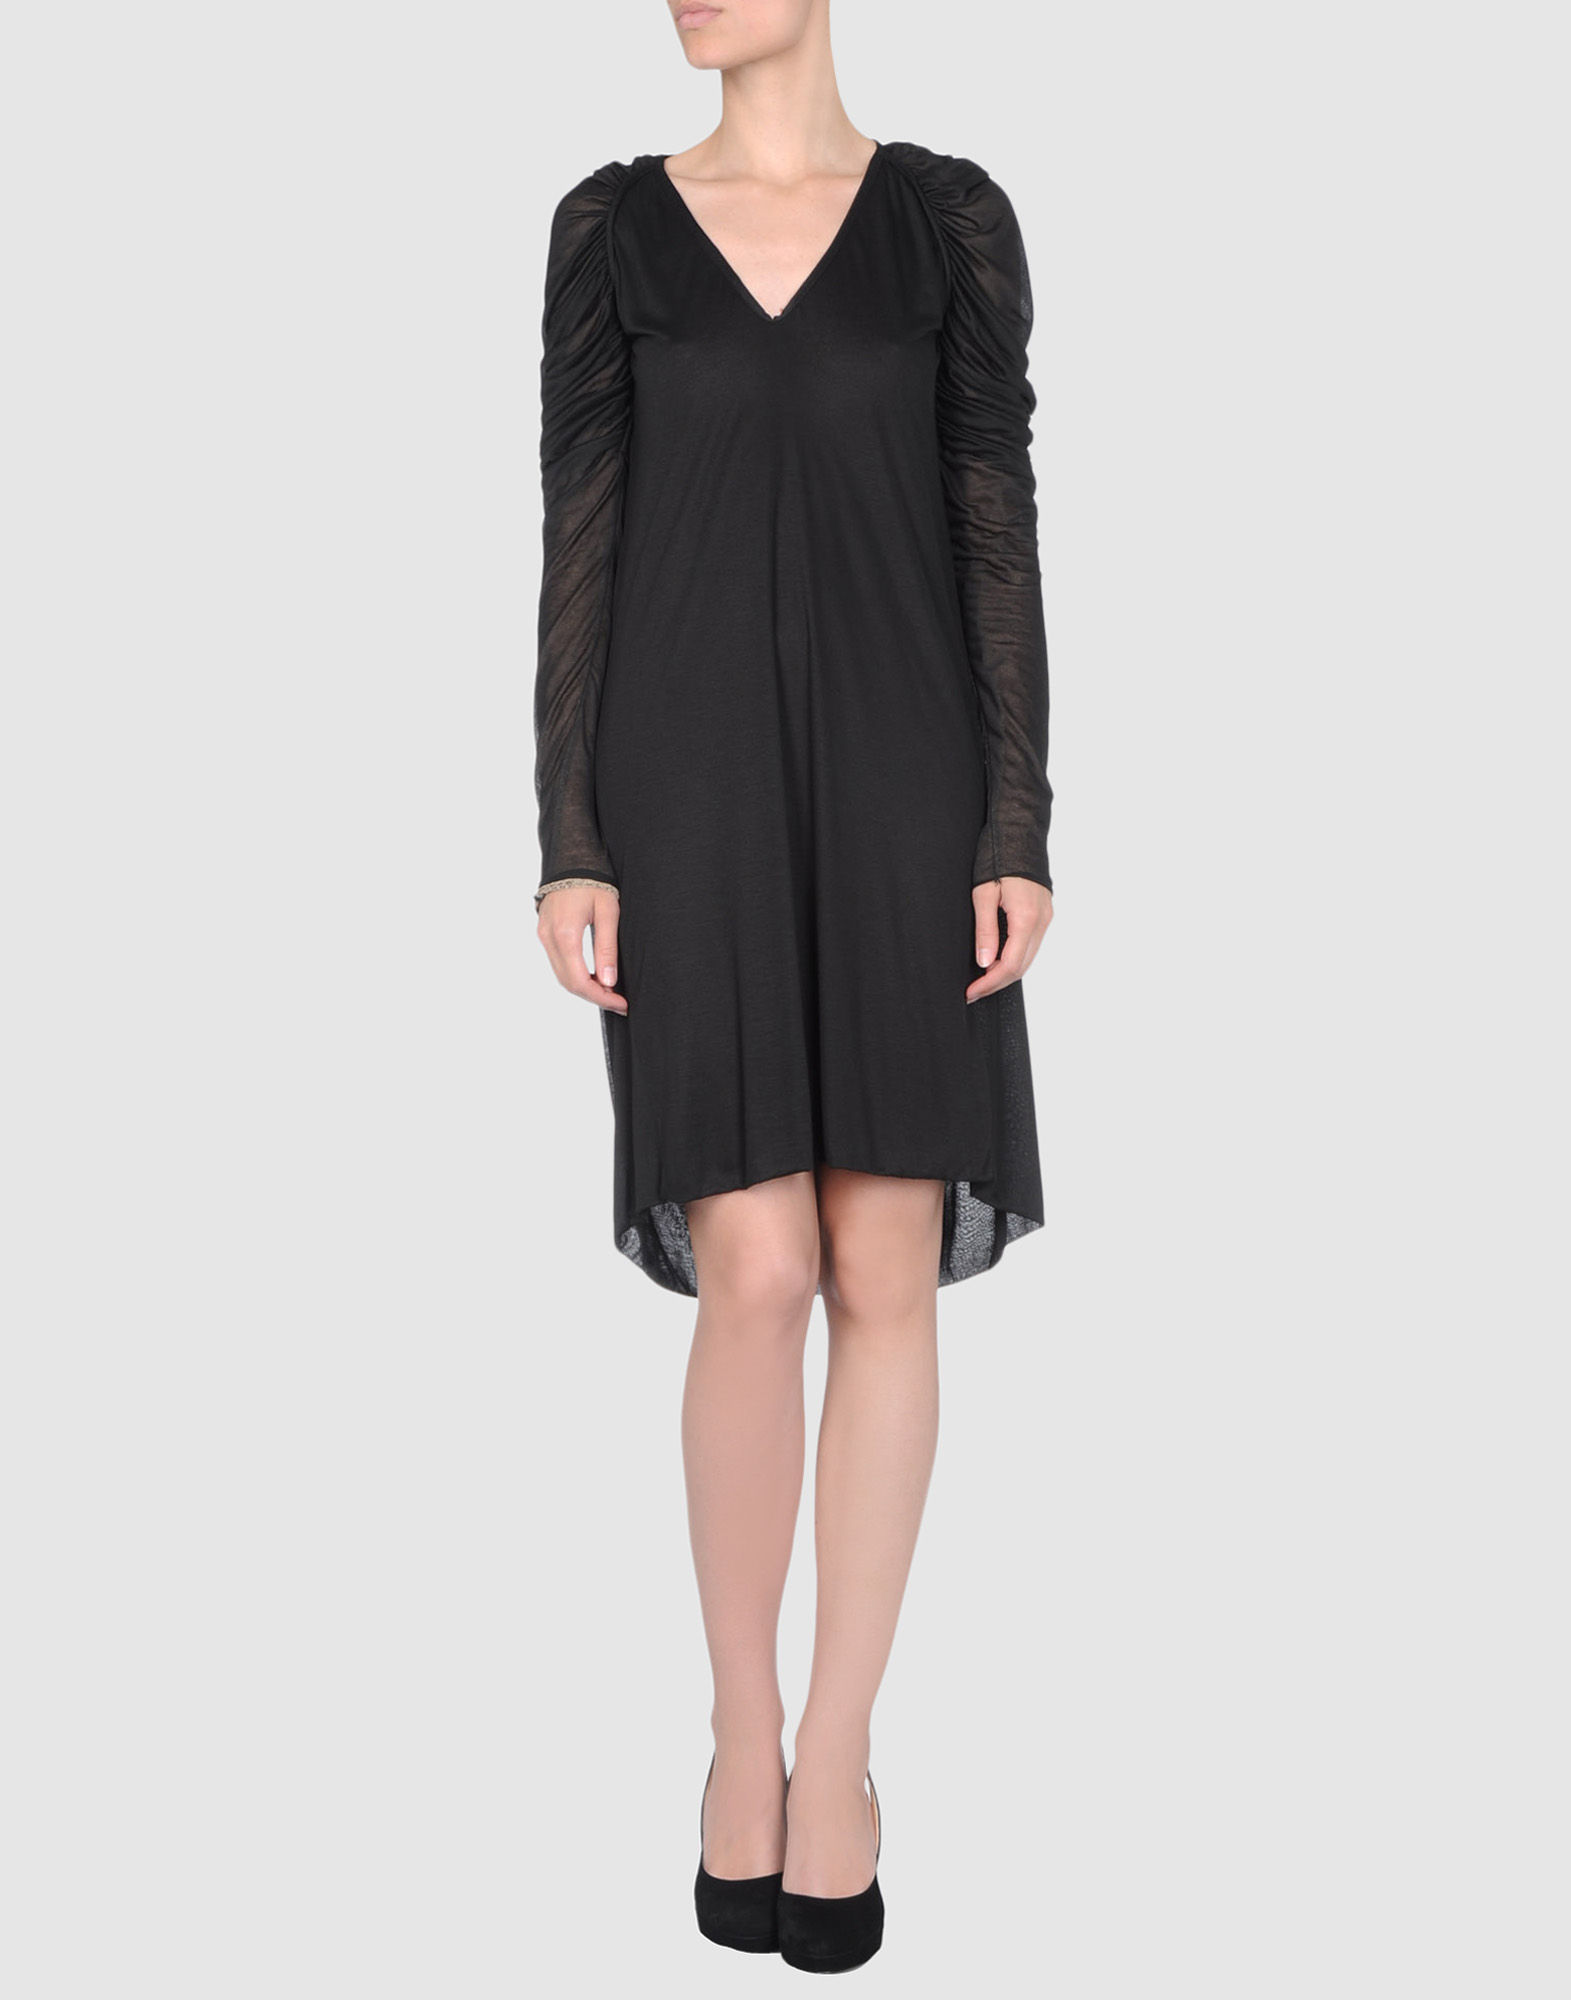 Marco de vincenzo black short dress